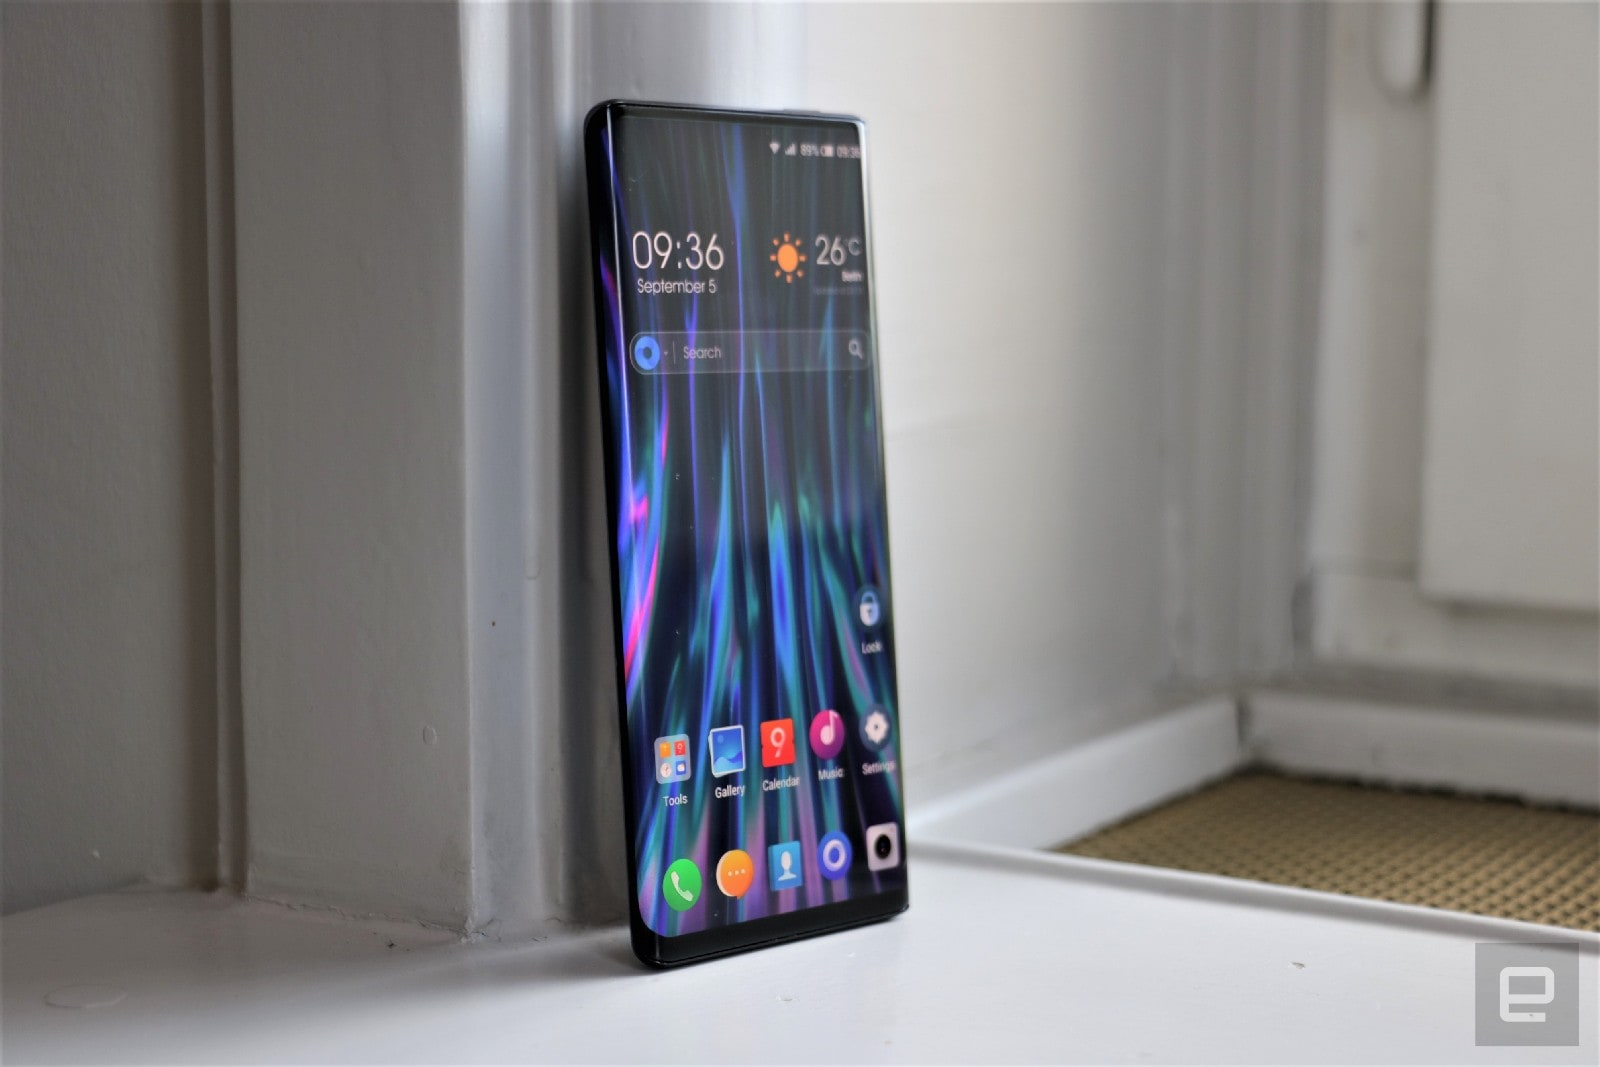 TCL Plex hands-on at IFA 2019